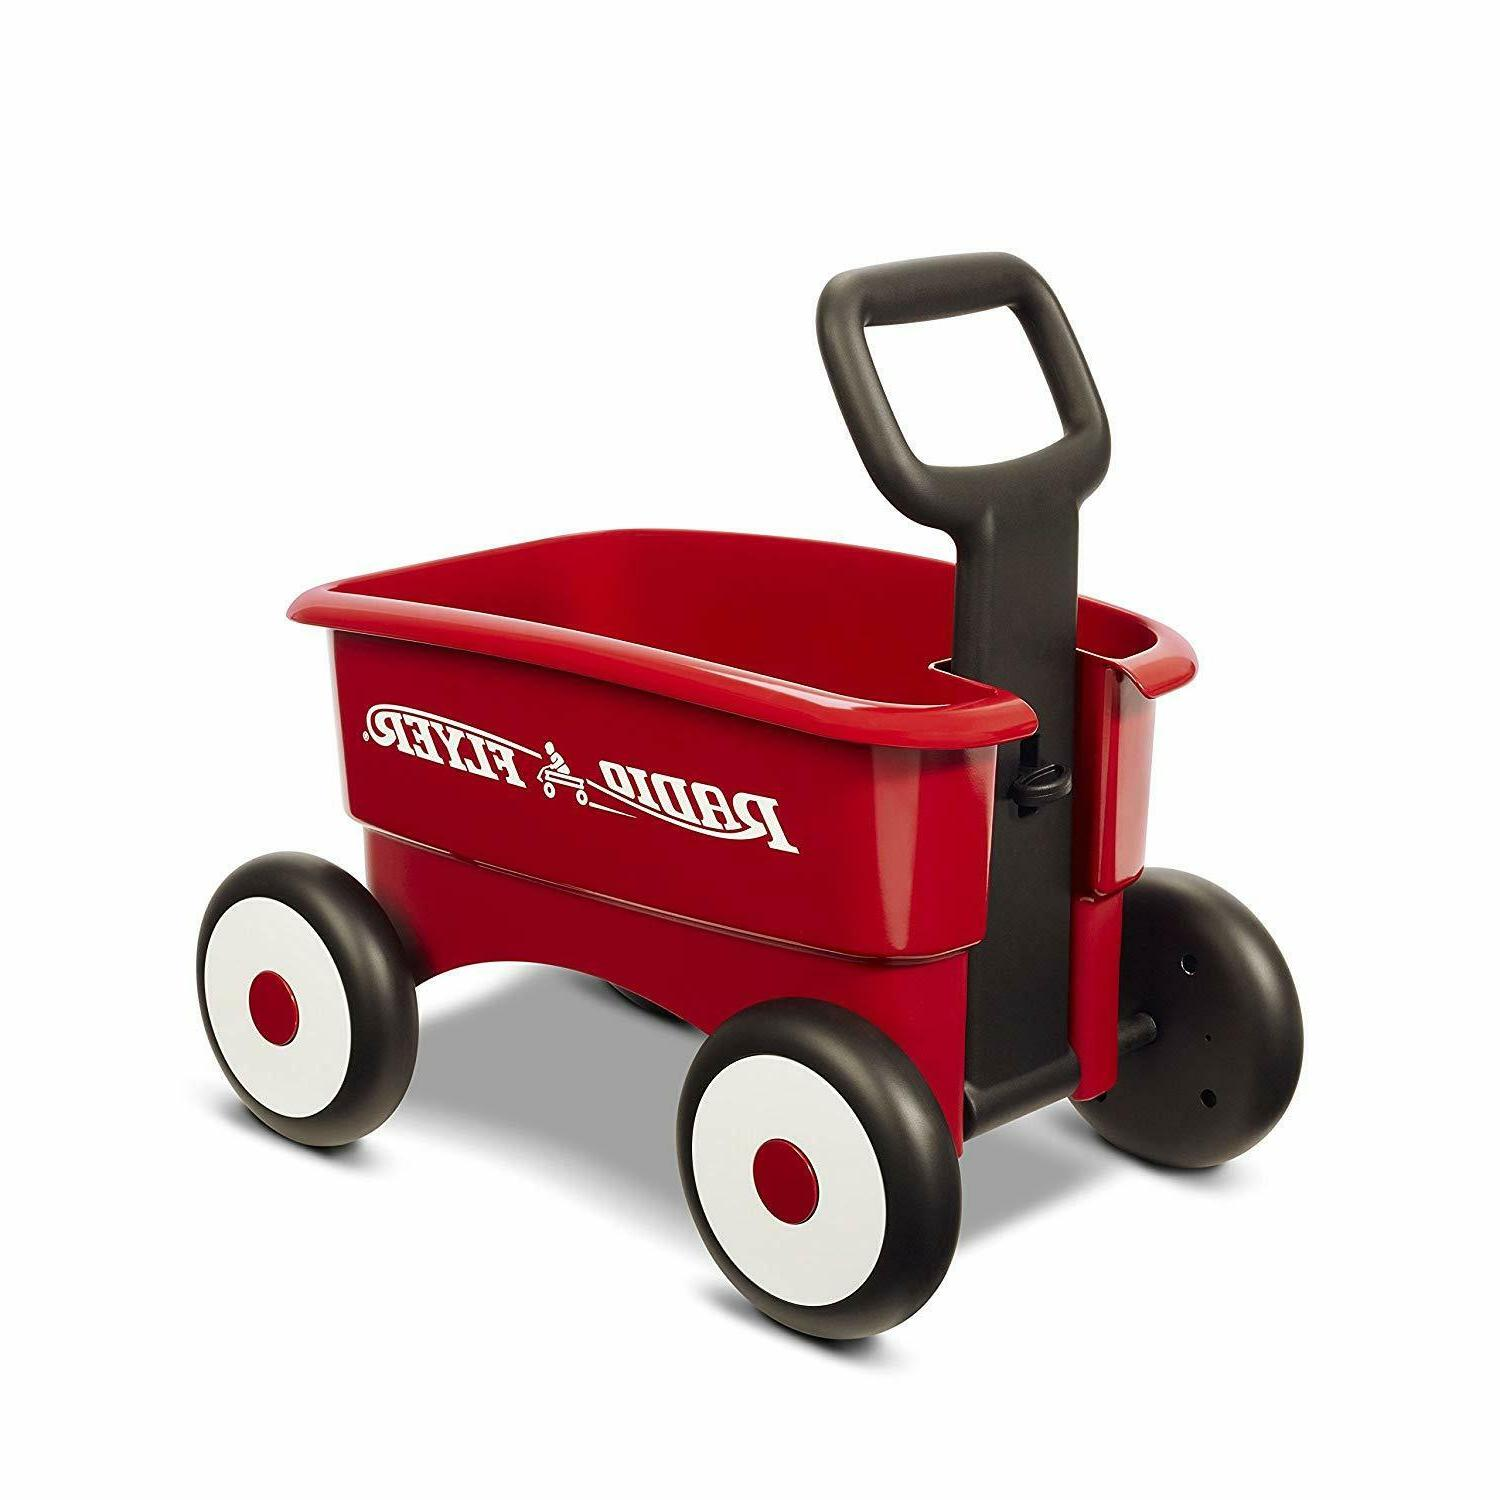 Radio 2-in-1 Wagon, Red